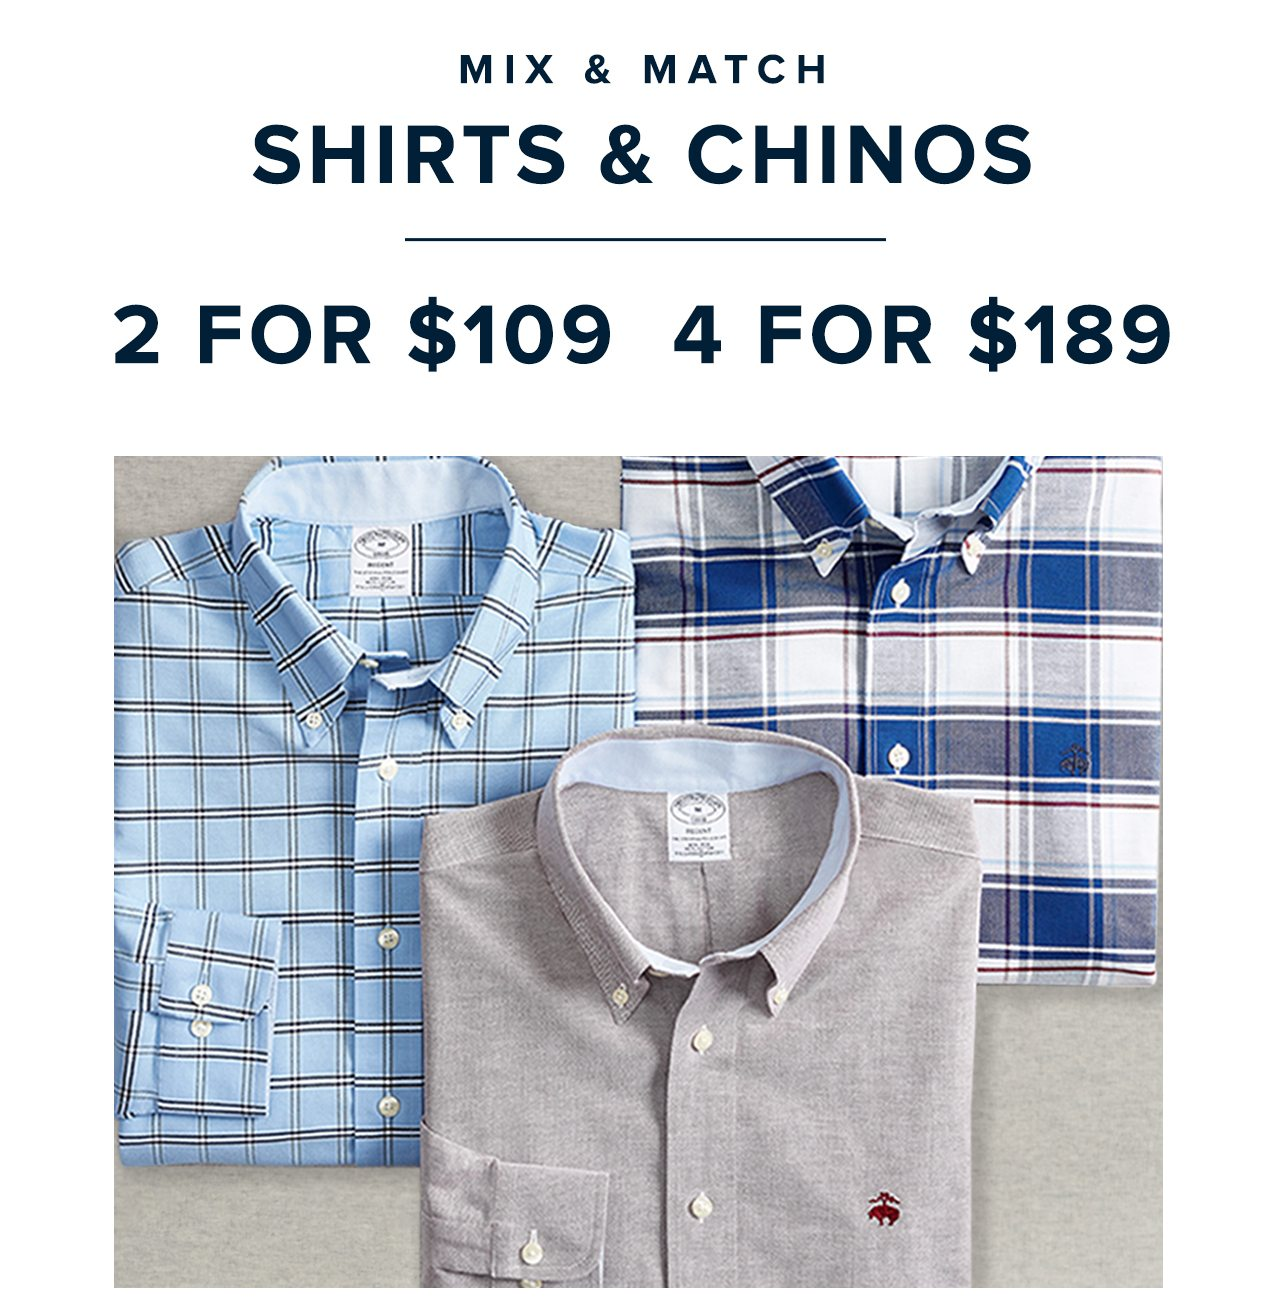 Mix and Match Shirts and Chinos 2 For $109 4 For $189